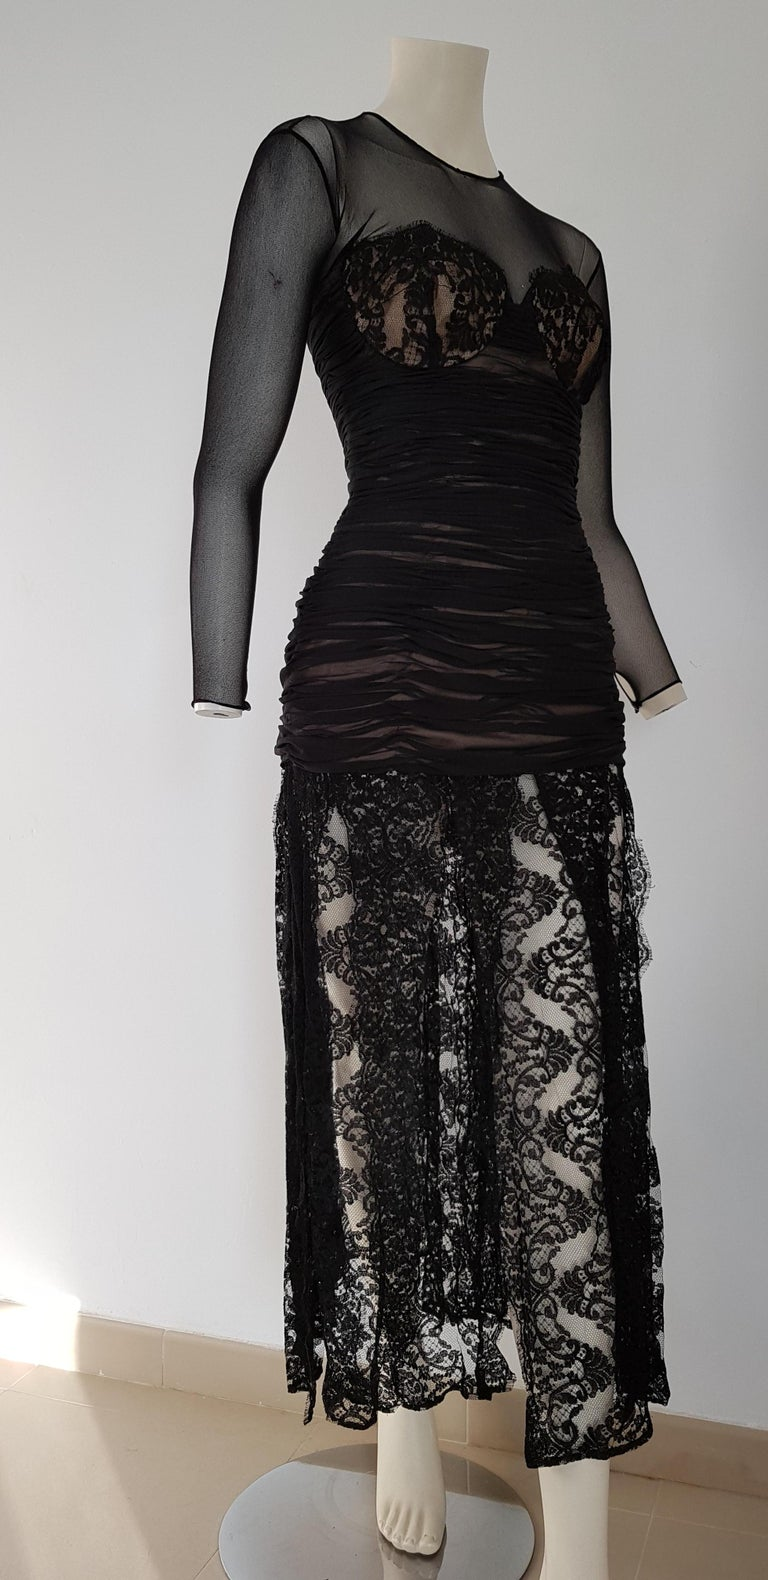 Isabelle ALLARD Paris chest and skirt laces, high pleated waistband, silk cotton black dress - Created in the Couture atelier of the Rue Saint Honoré Paris - Unworn, New.  Isabelle ALLARD is a Paris brand that created only haute couture and selling